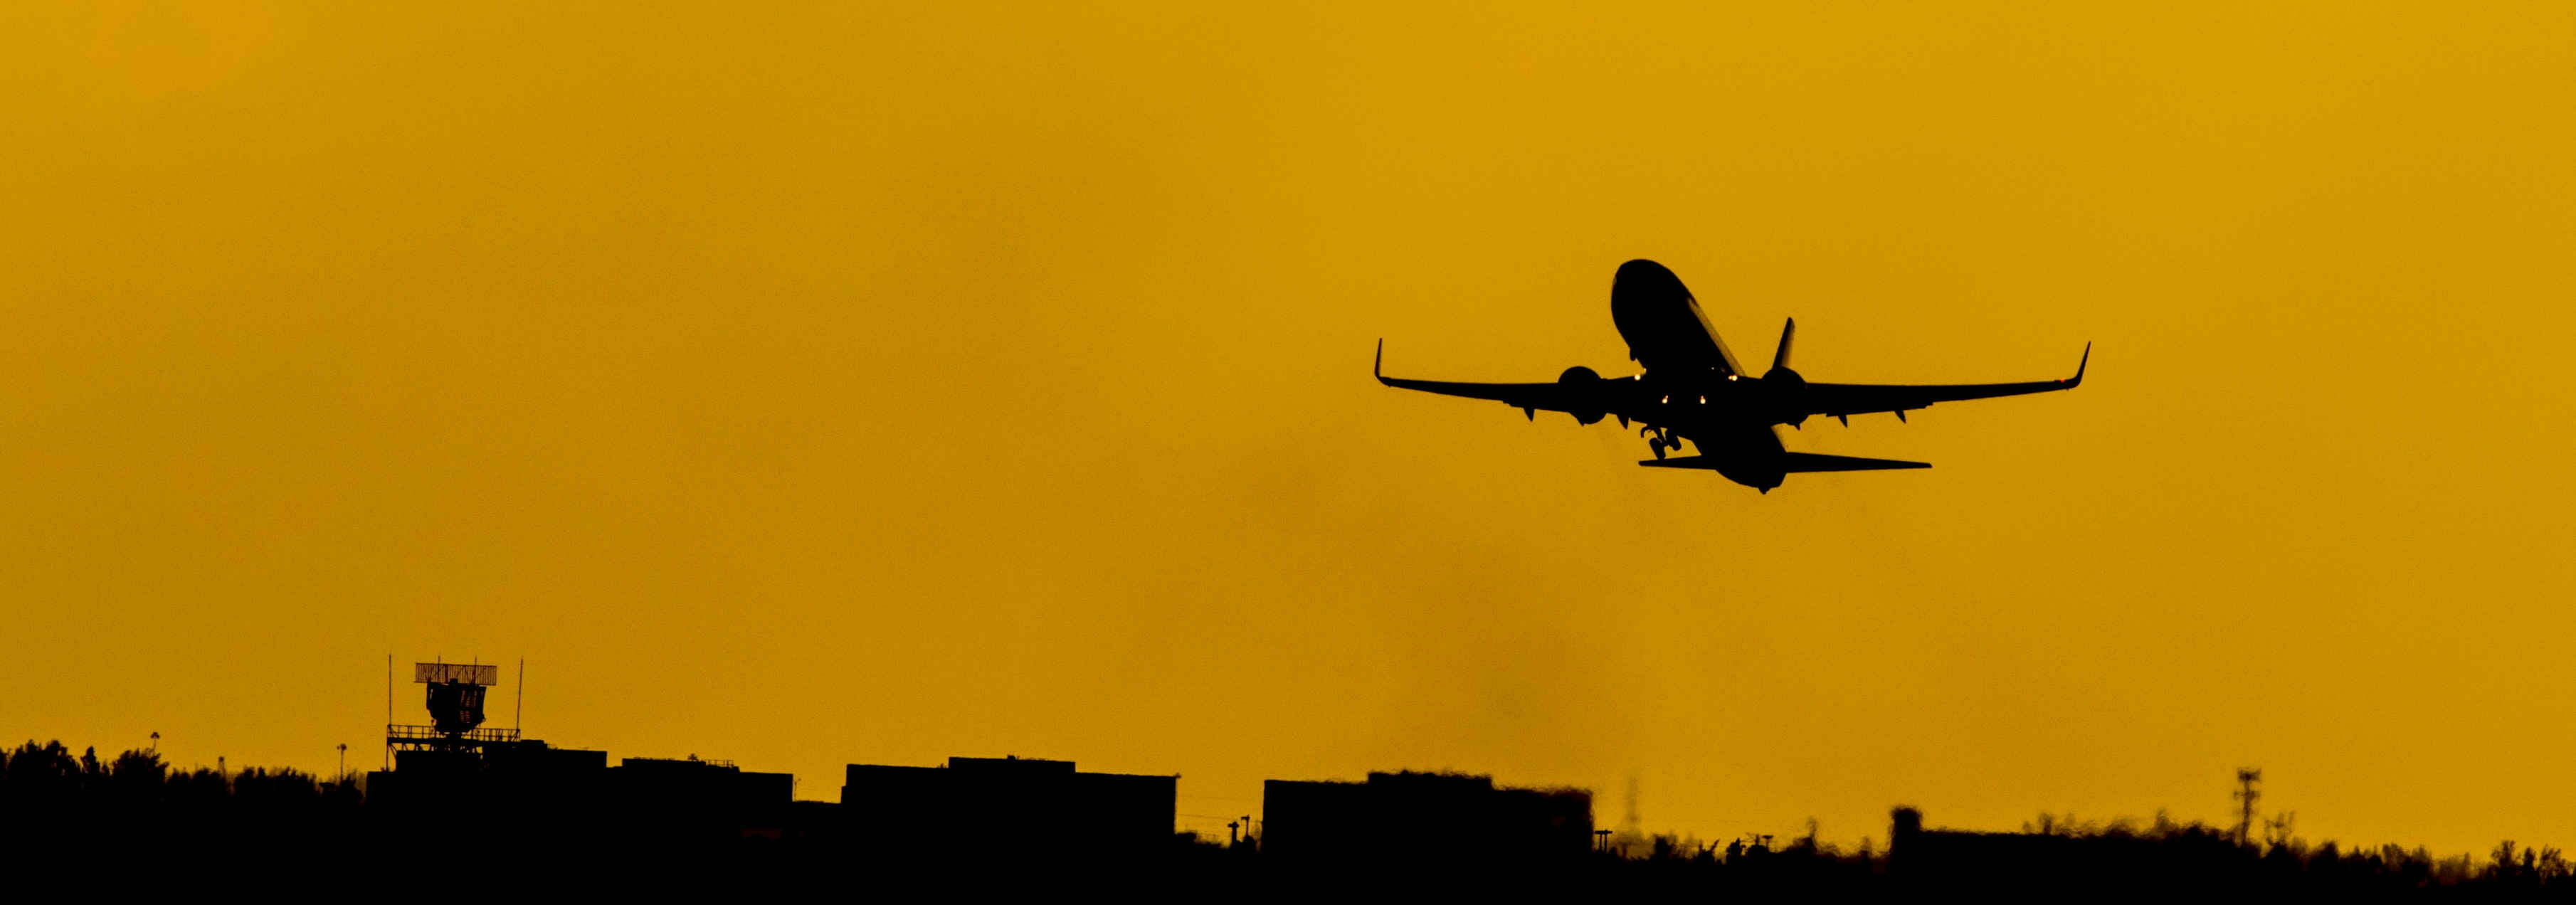 The departure of a plane, representing the link between foreign experiences and unethical behavior.